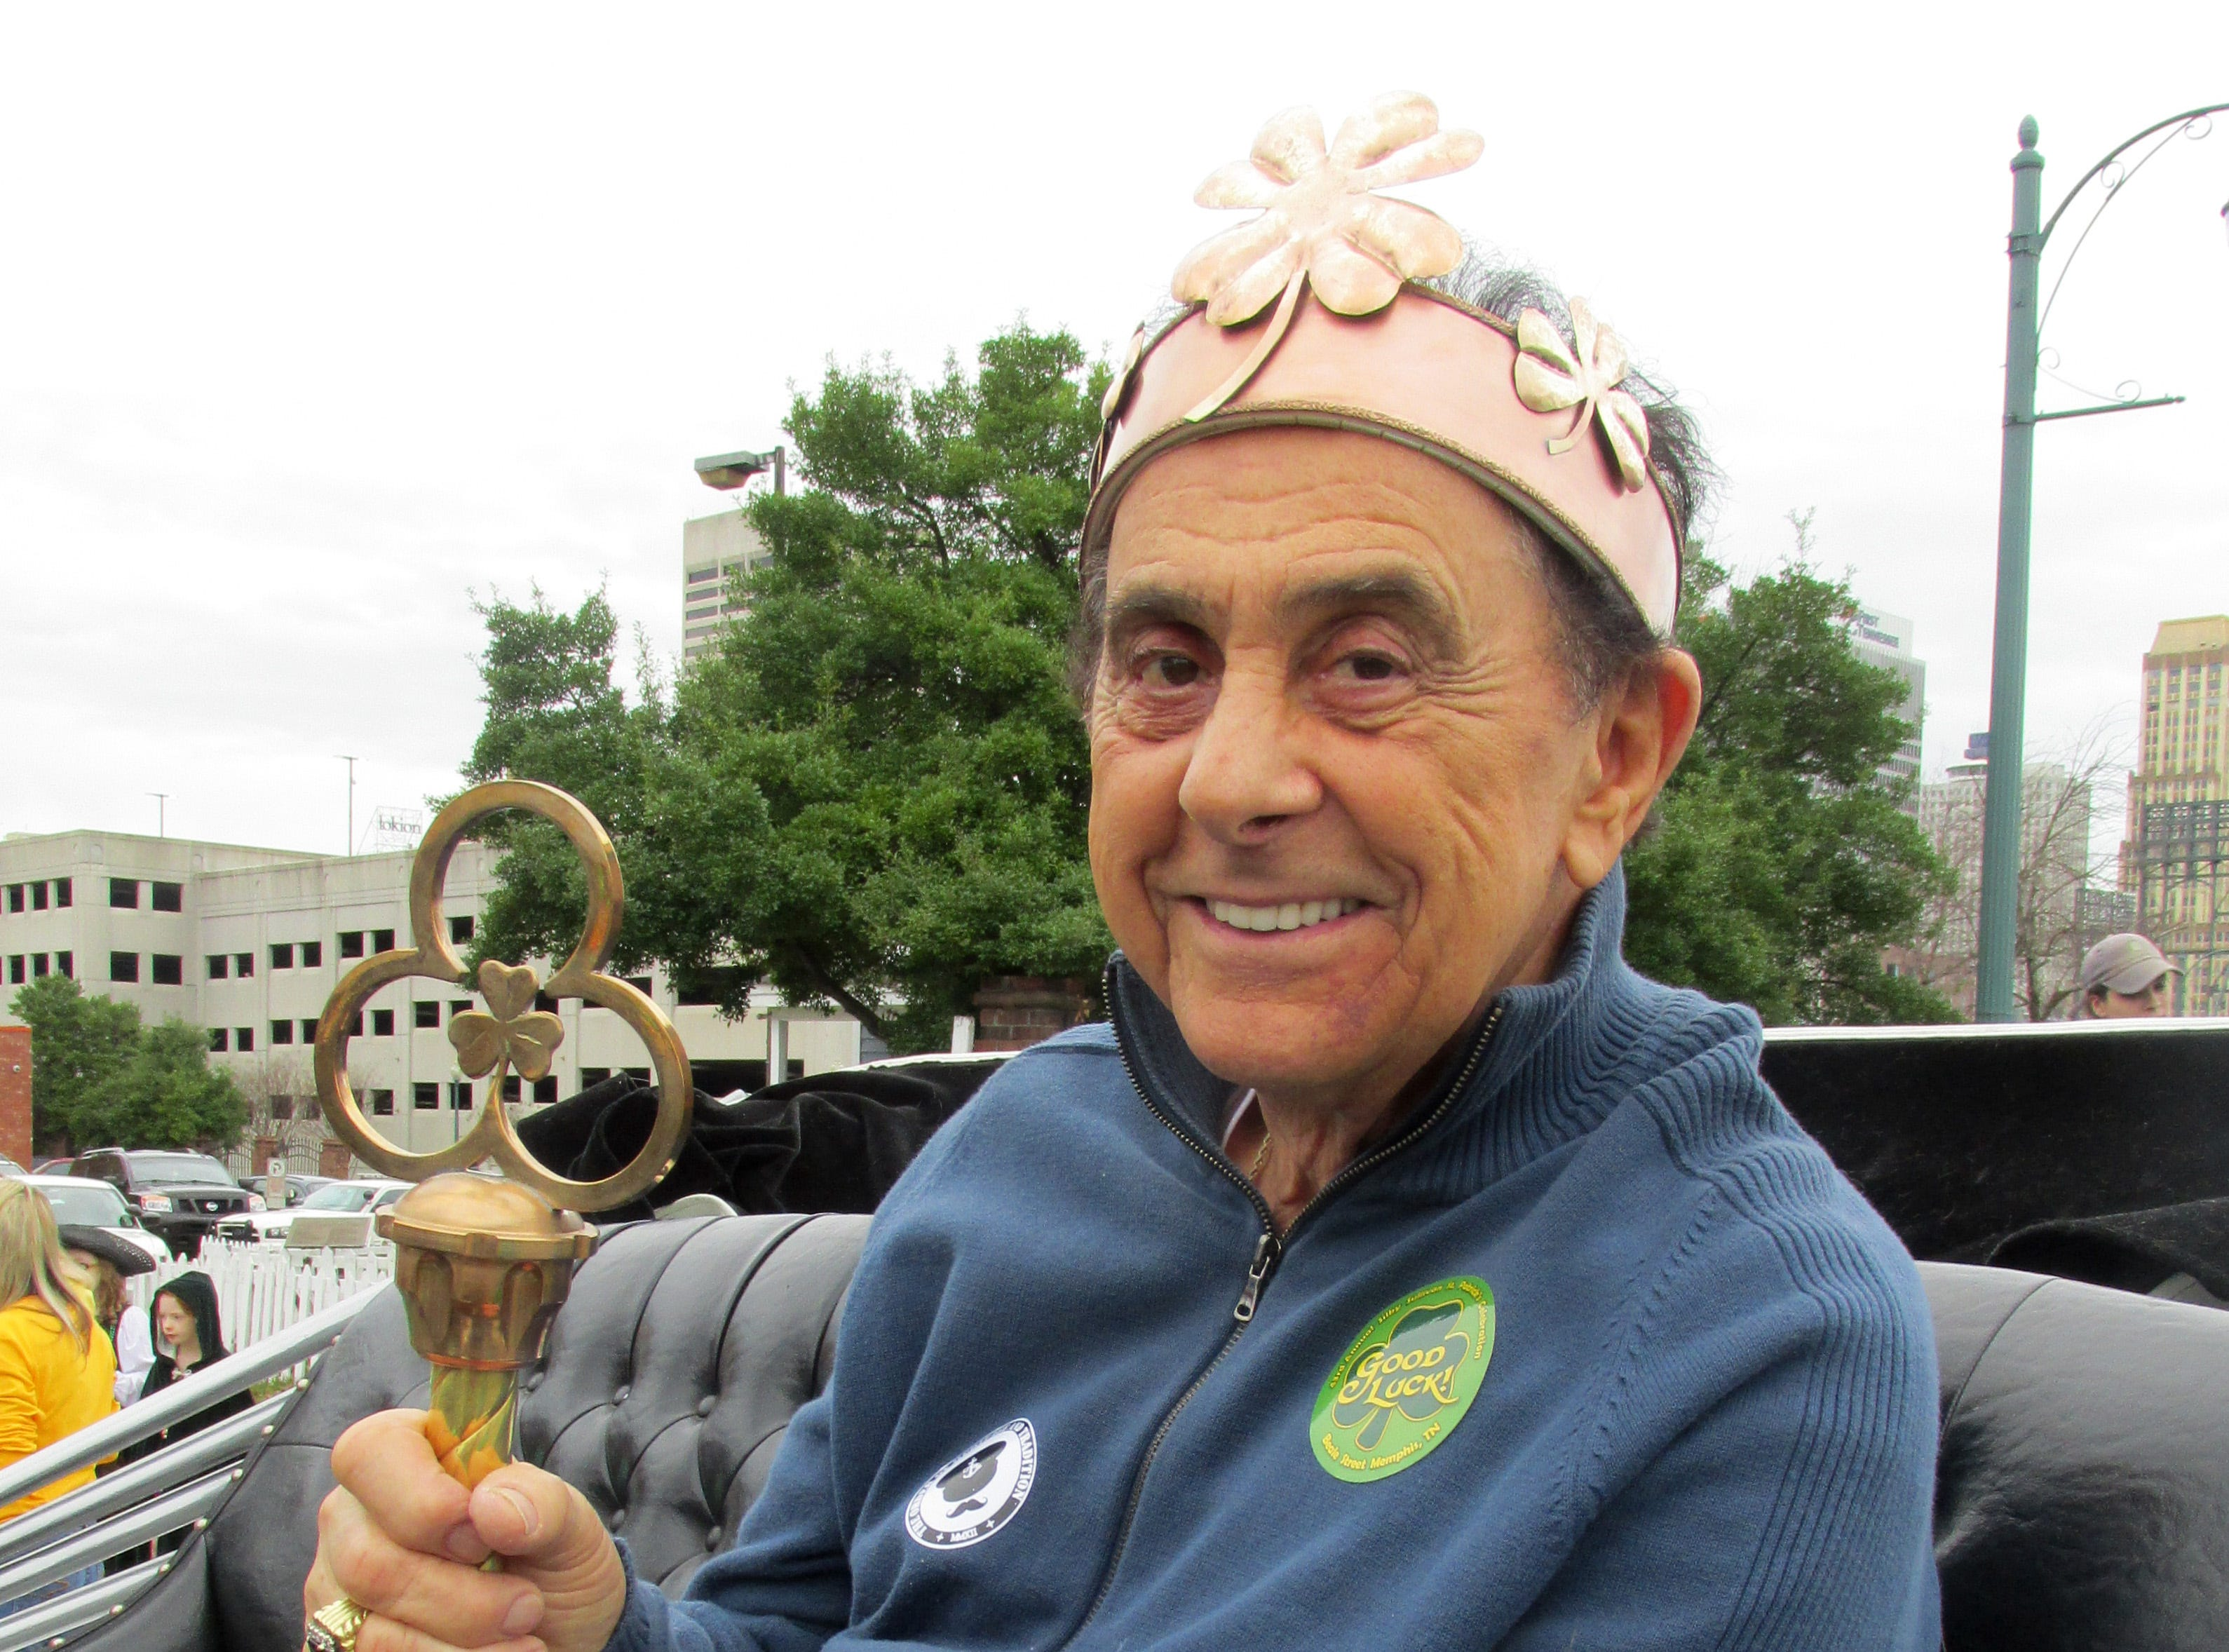 March 12, 2016 - George Klein was king of the Silky Sullivan's St. Patrick's Parade.